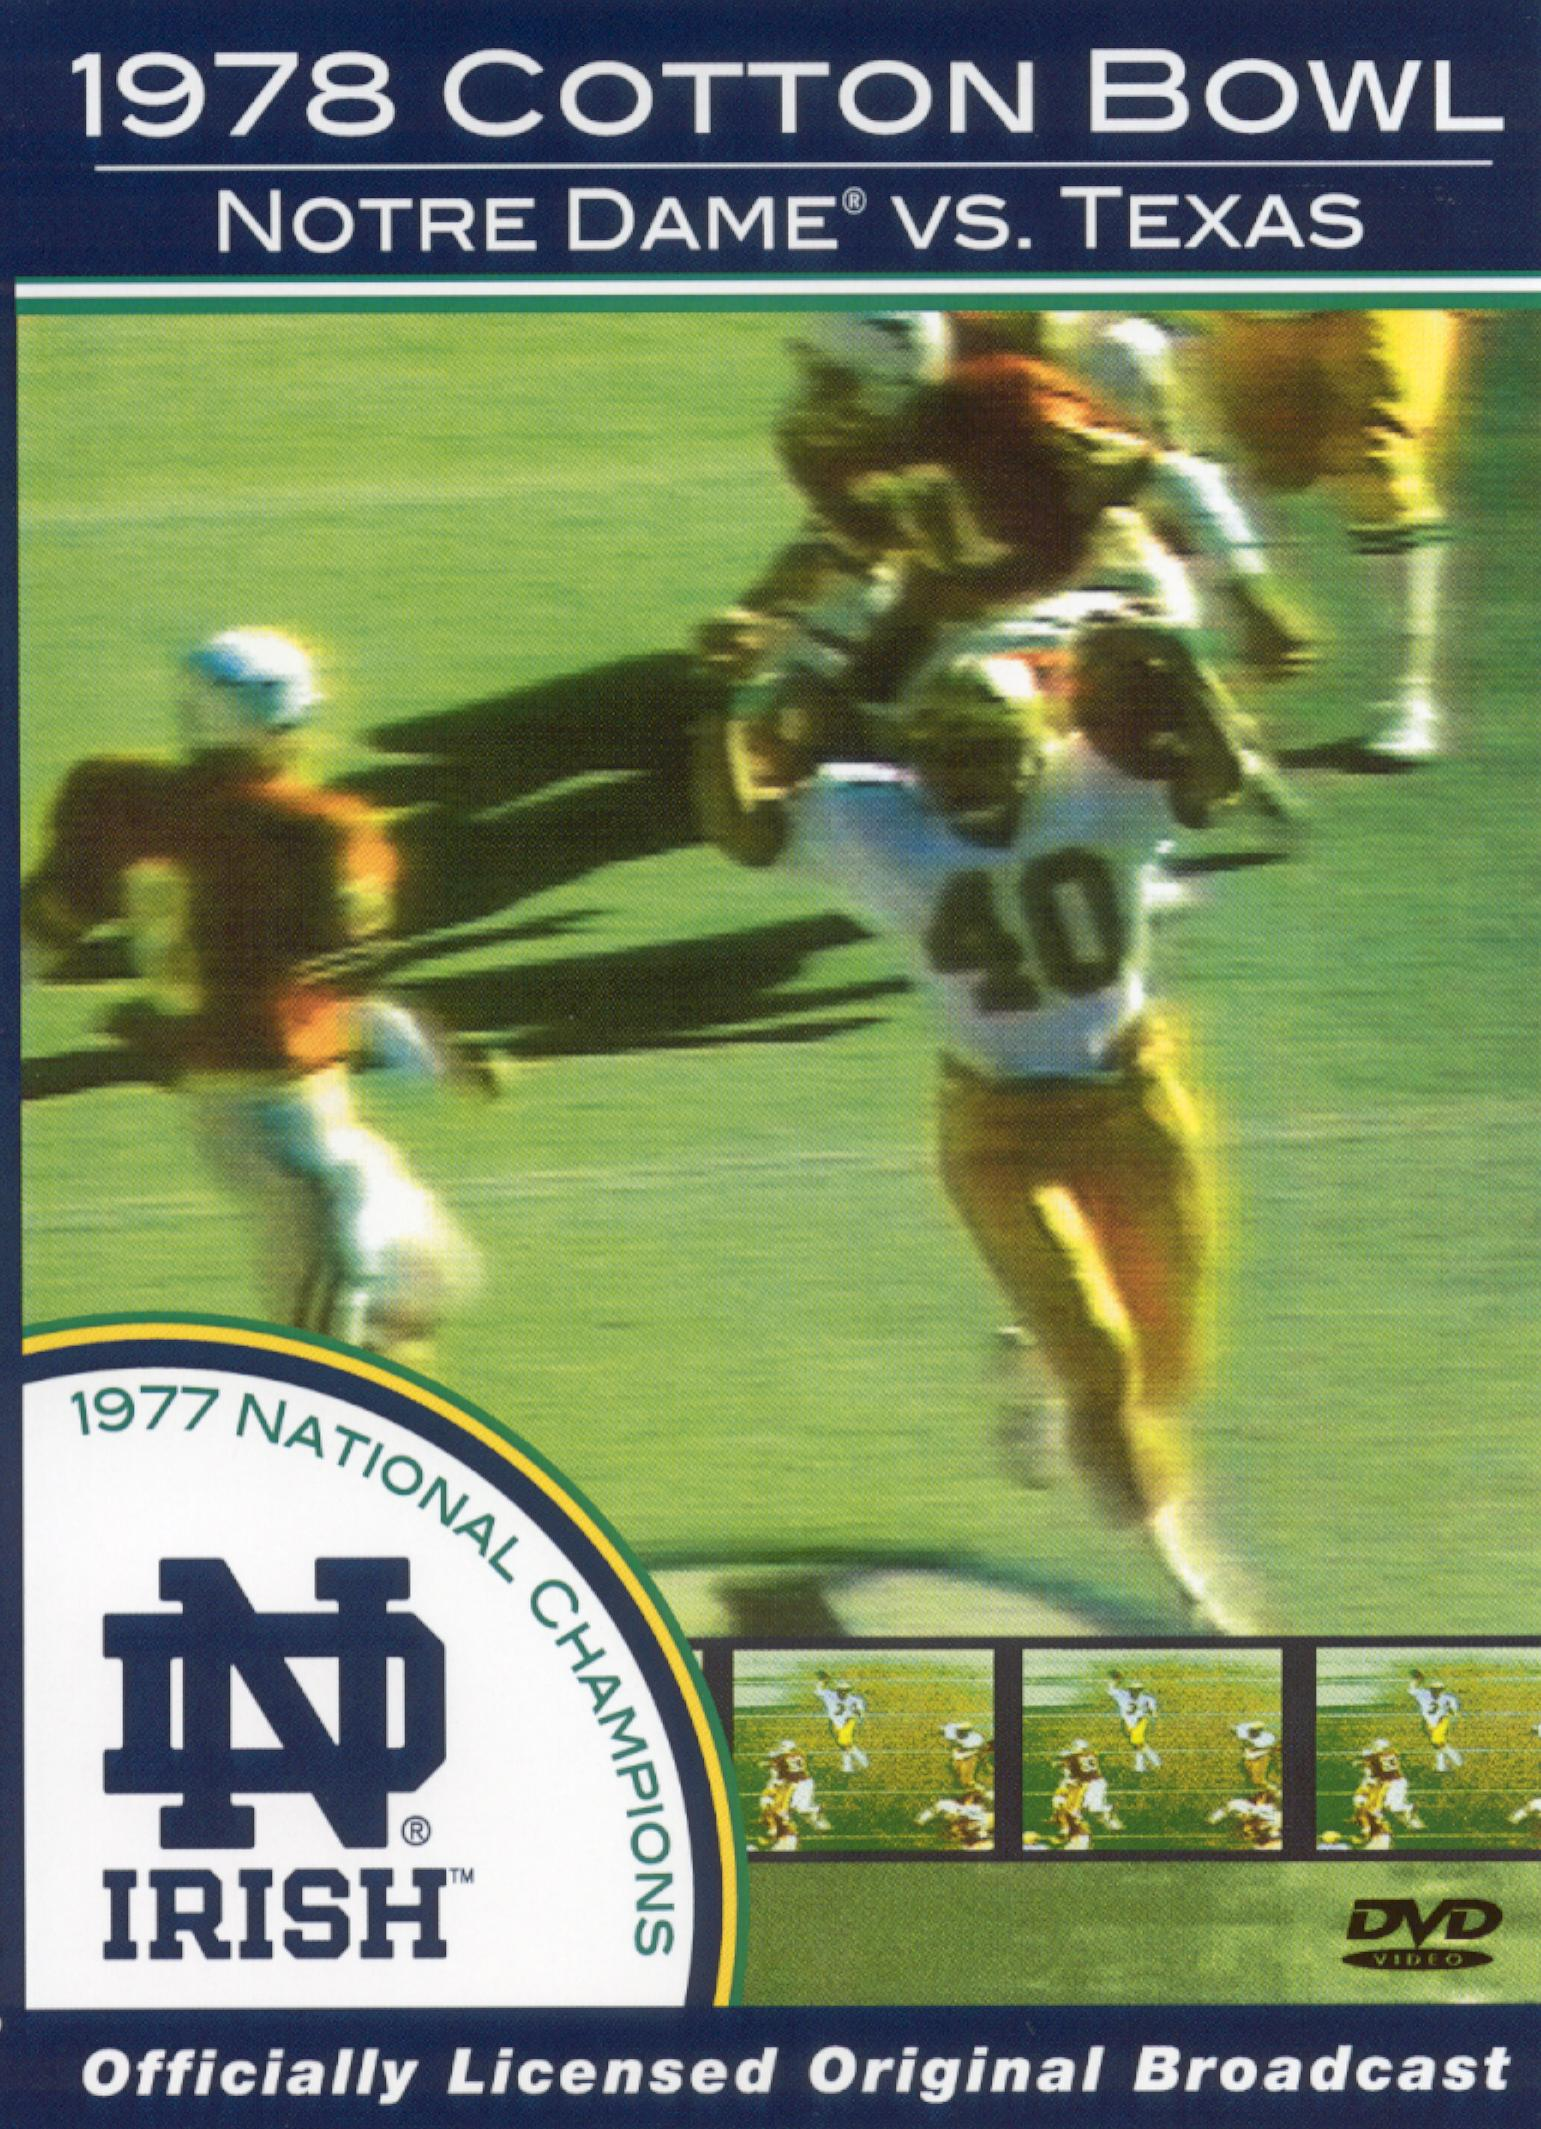 The 1978 Cotton Bowl: Notre Dame vs. Texas